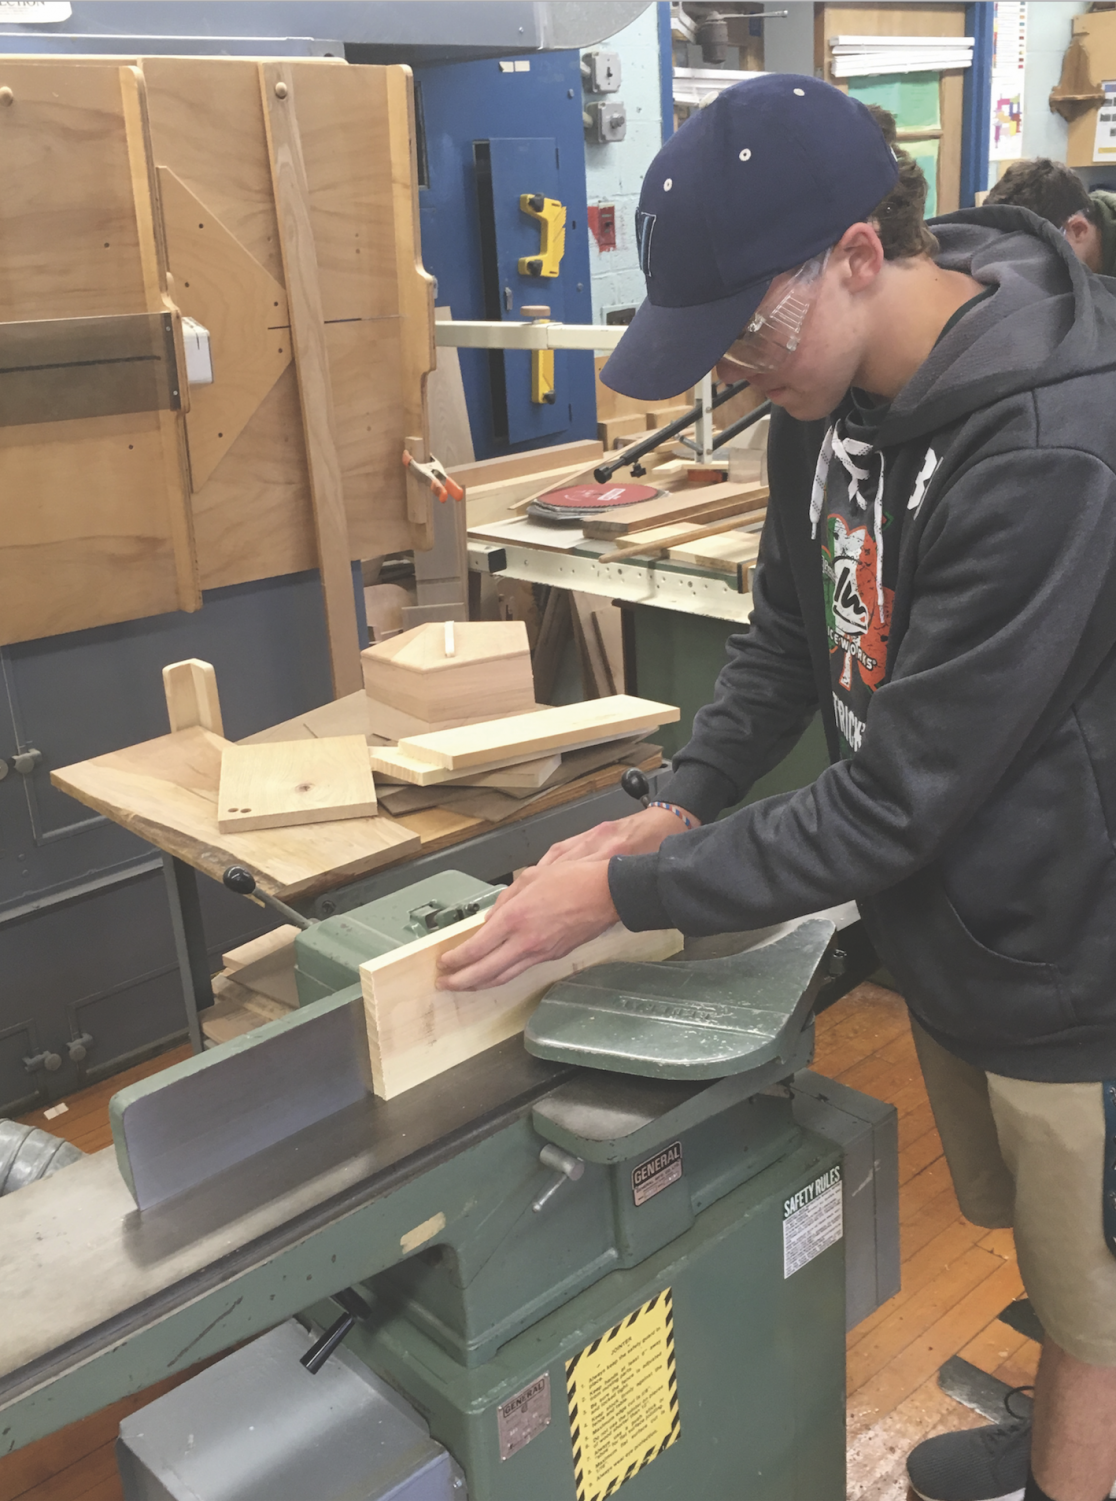 Junior Jack Ruckman works on a project in Woods ll